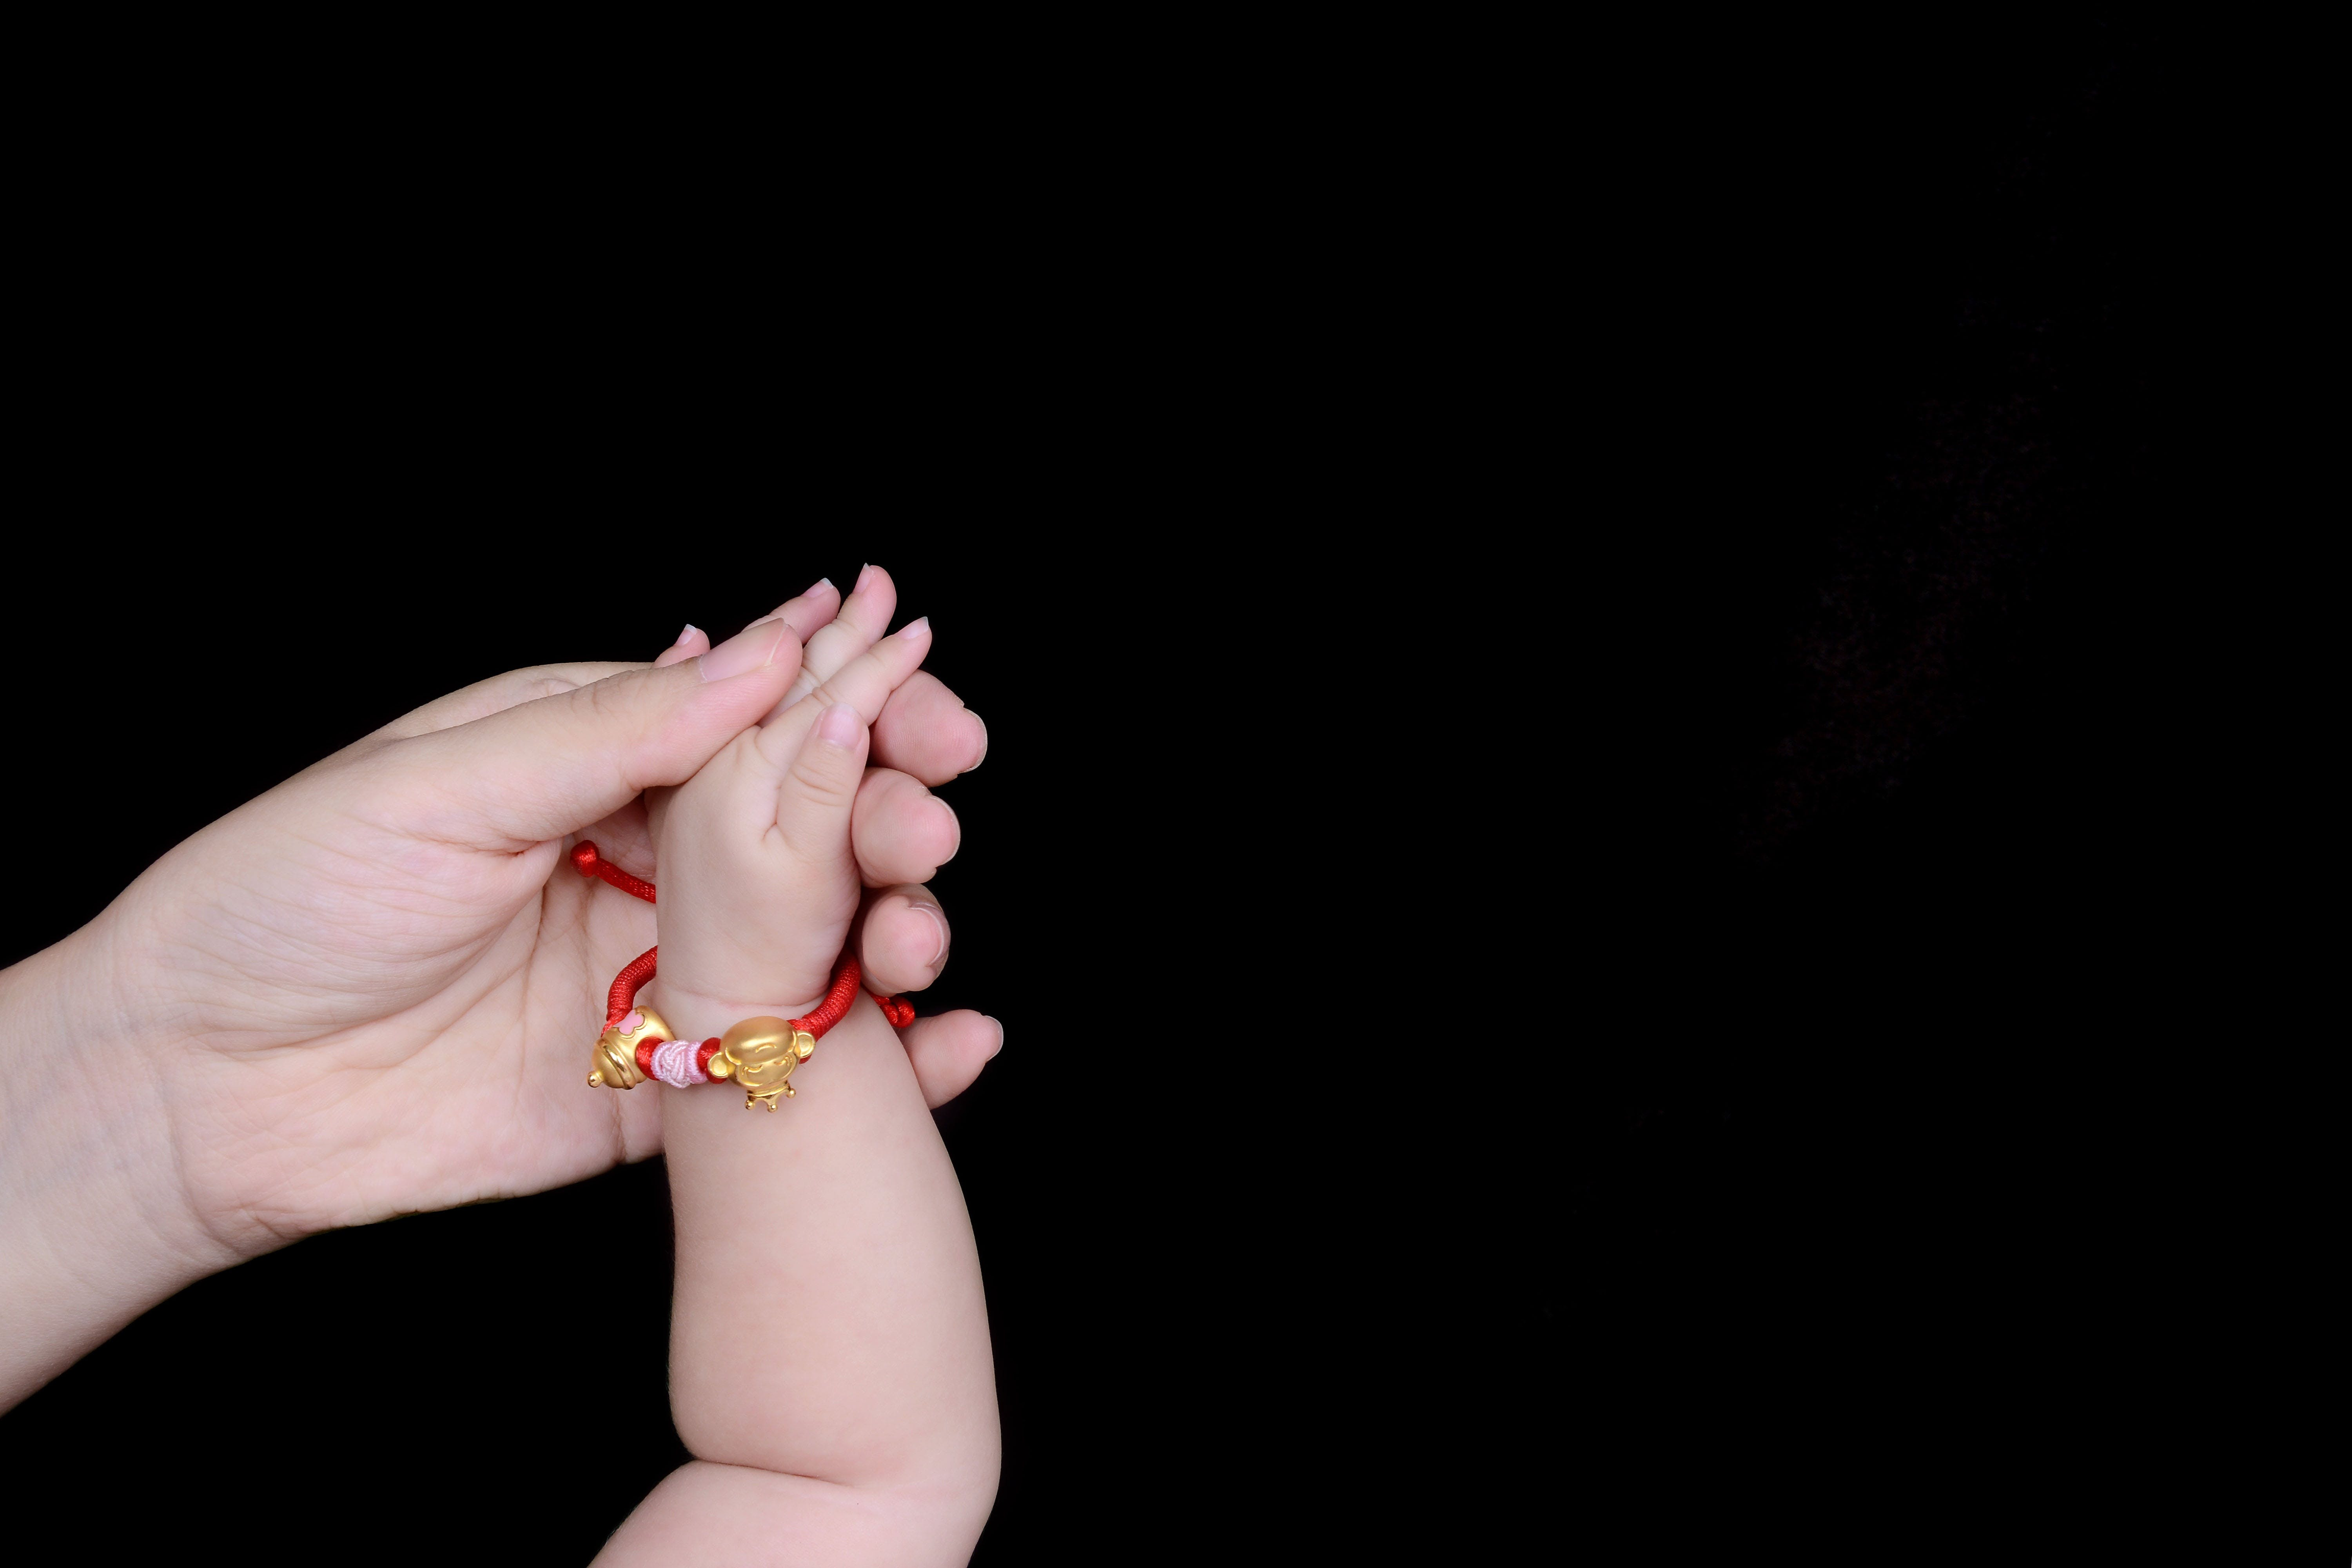 Person Holding Baby's Hand